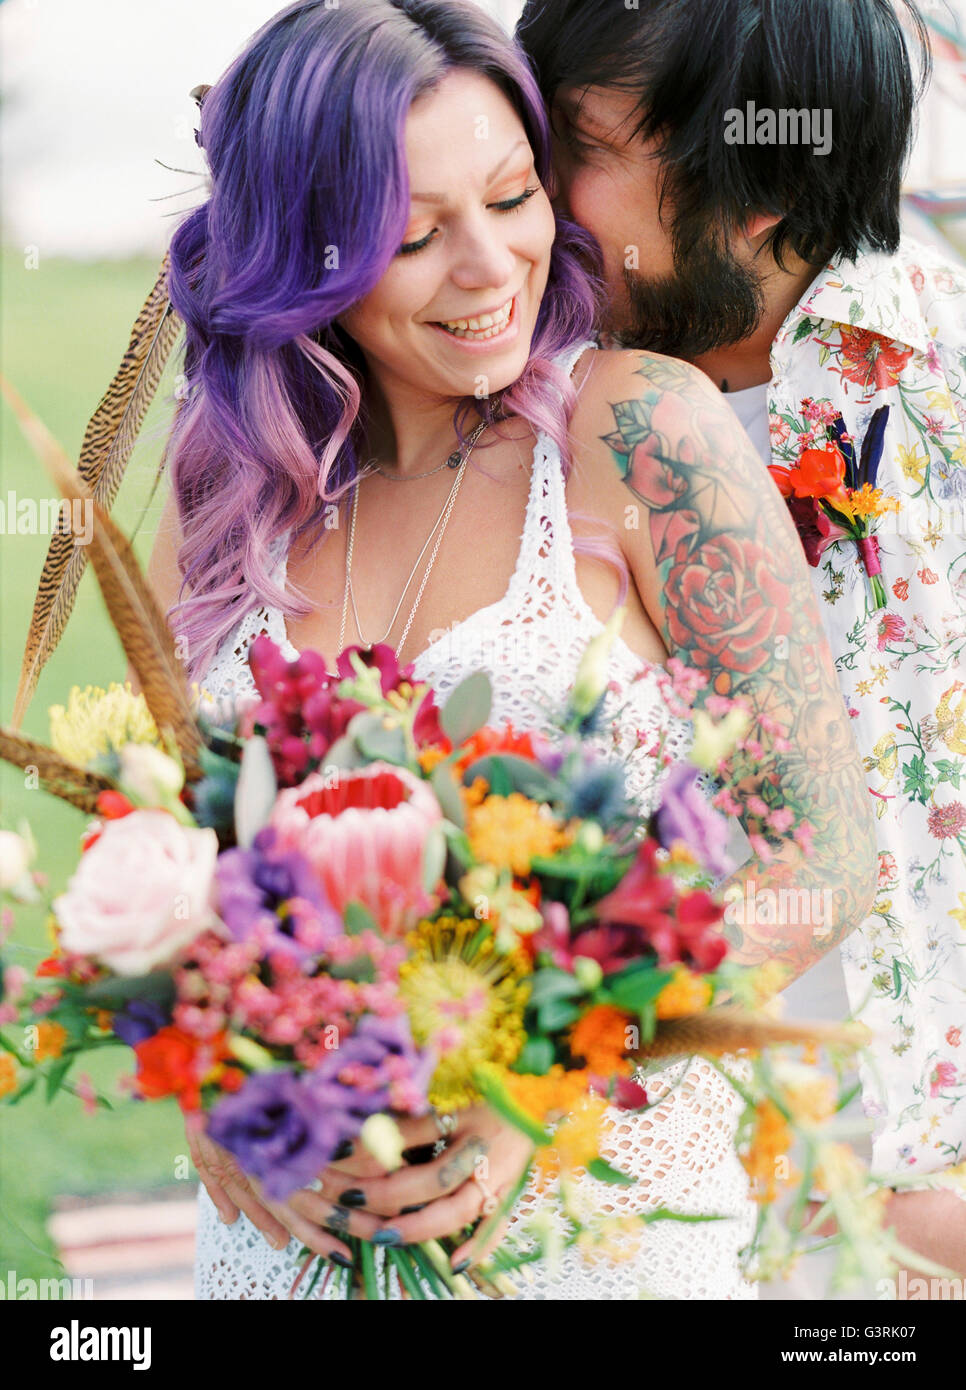 Sweden, Groom kissing bride at hippie wedding - Stock Image